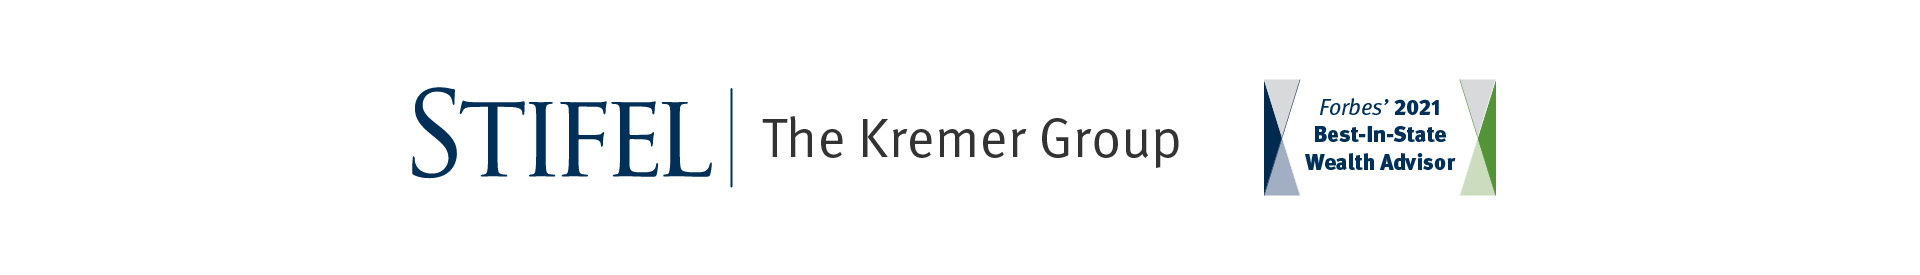 The Kremer Group